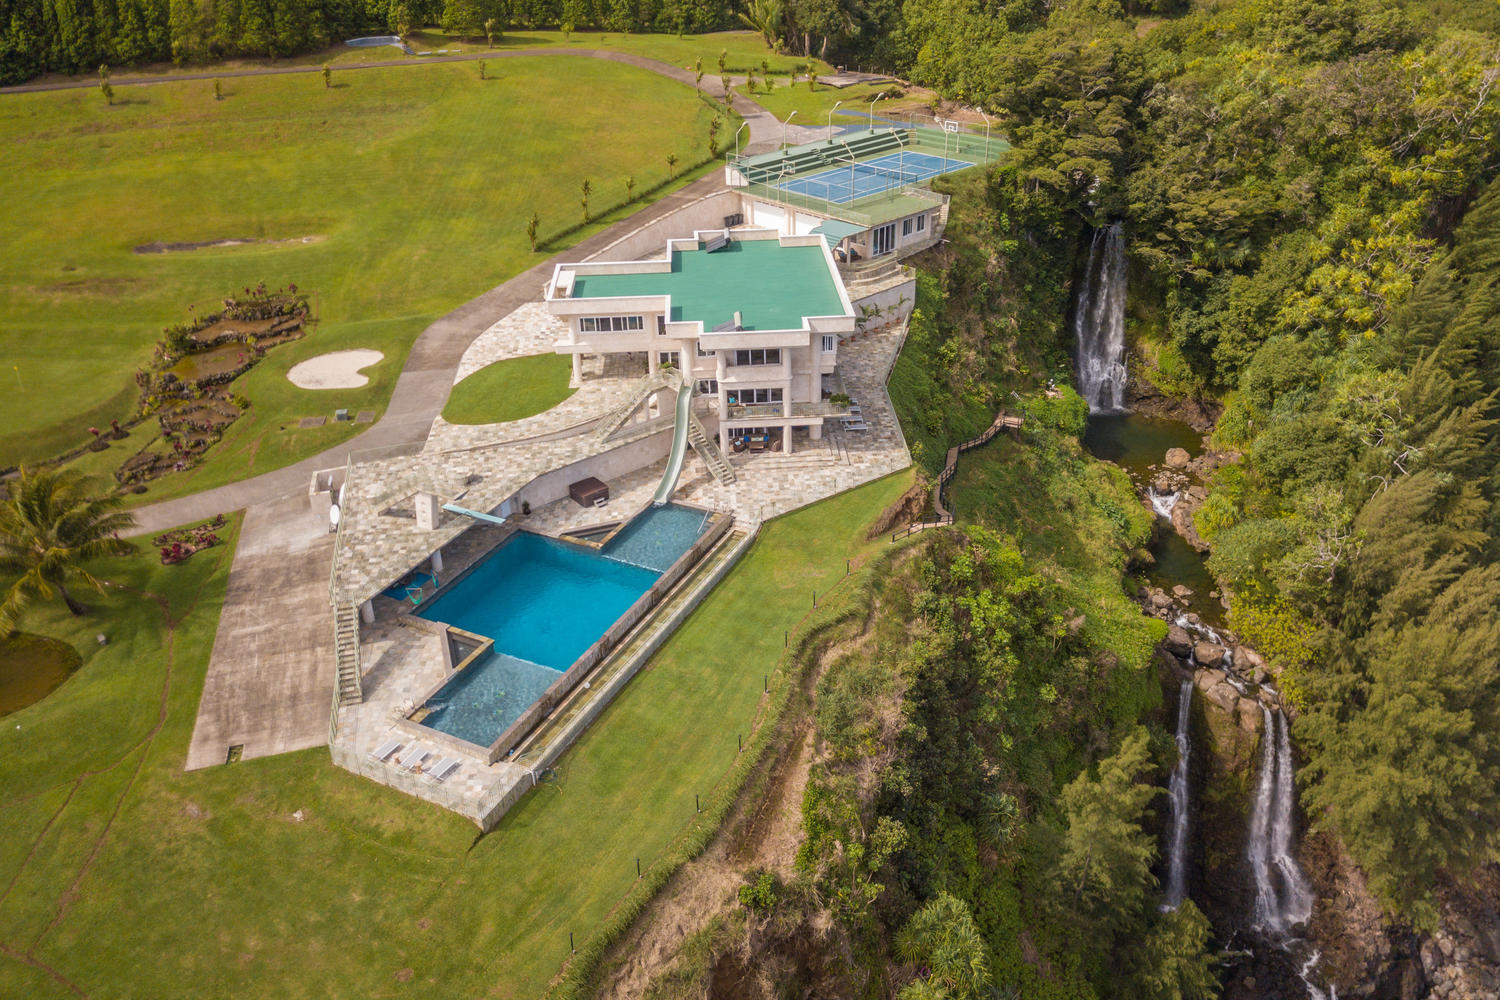 The many resort-like amenities and waterfalls on this unique cliff-side estate add value and support a higher asking price. ( MLS # 613831 )